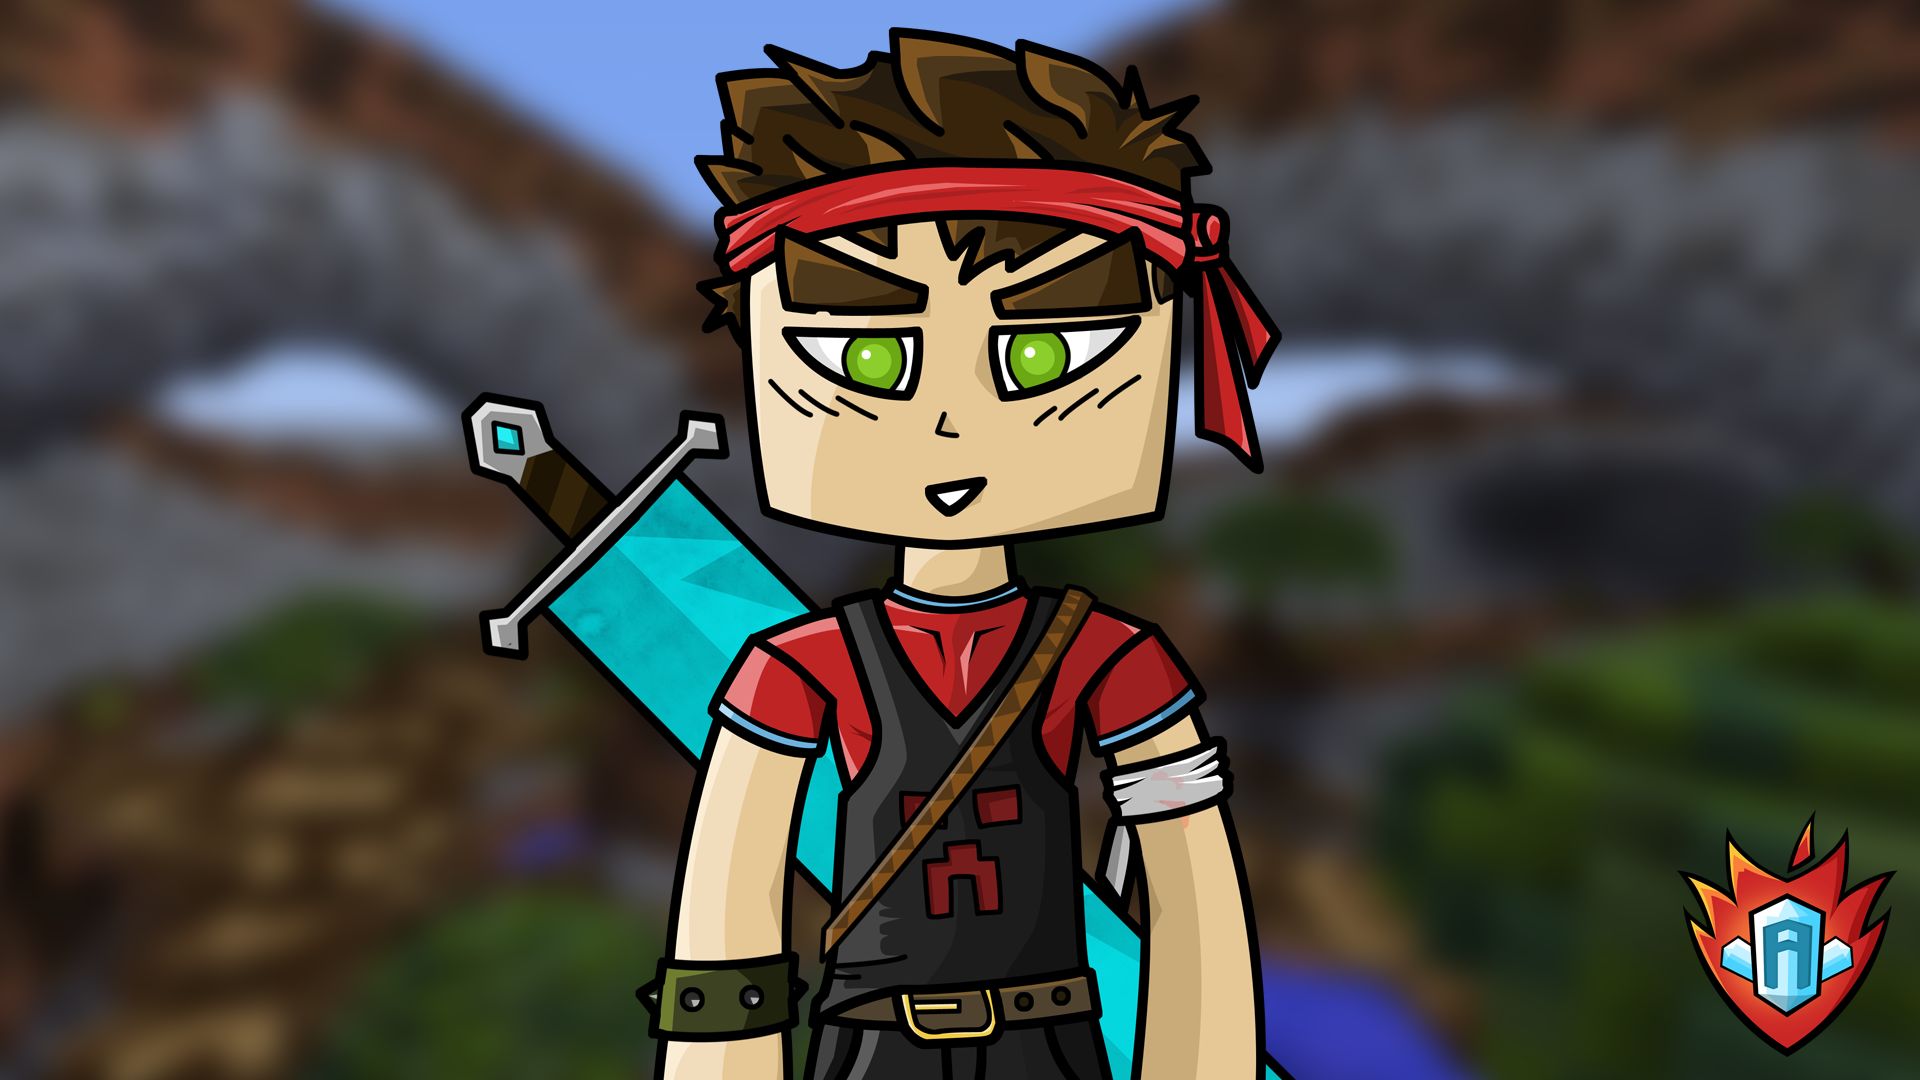 Dessin Mes Dessins Minecraft Autres Forum Minecraft France